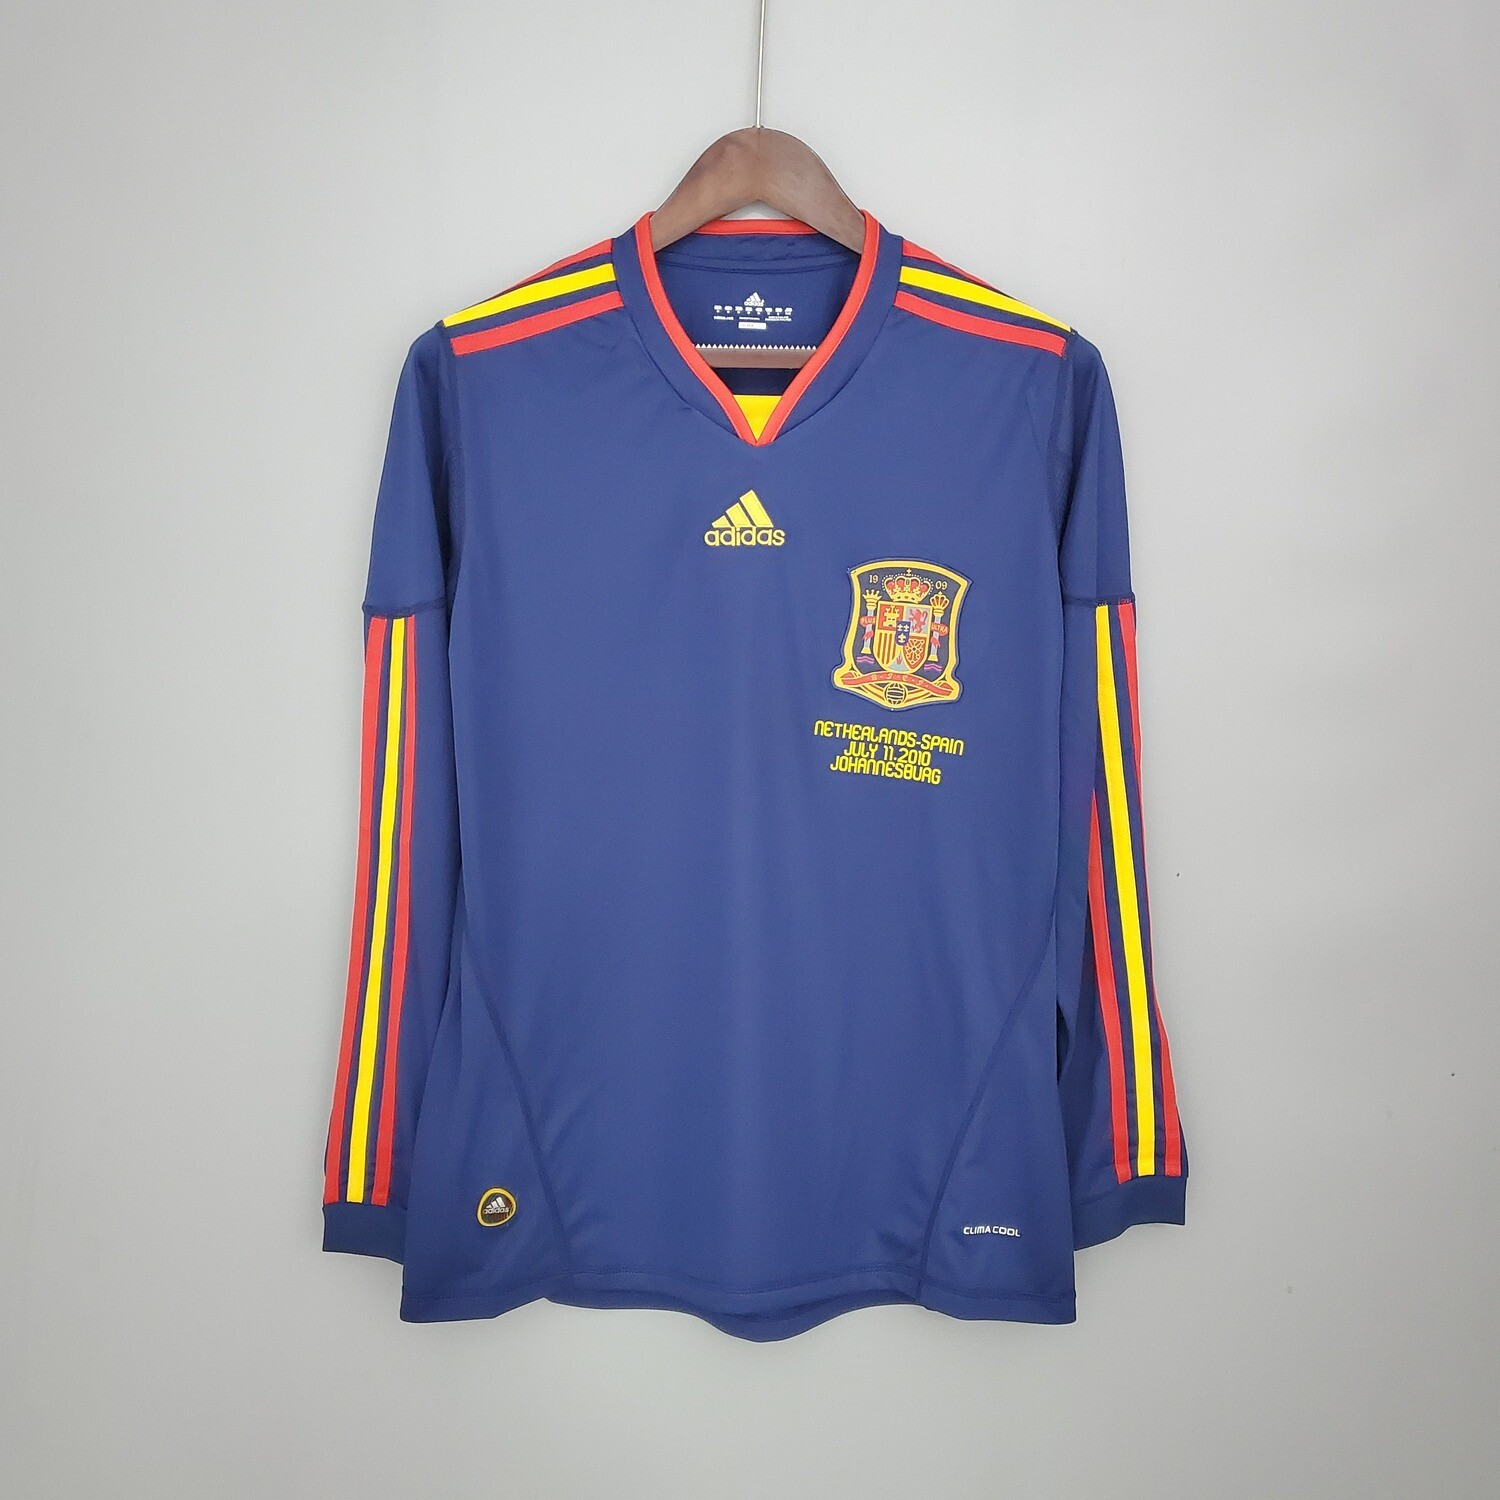 Spain 2010 Retro Away Full Sleeves Jersey [Pre-paid Only]